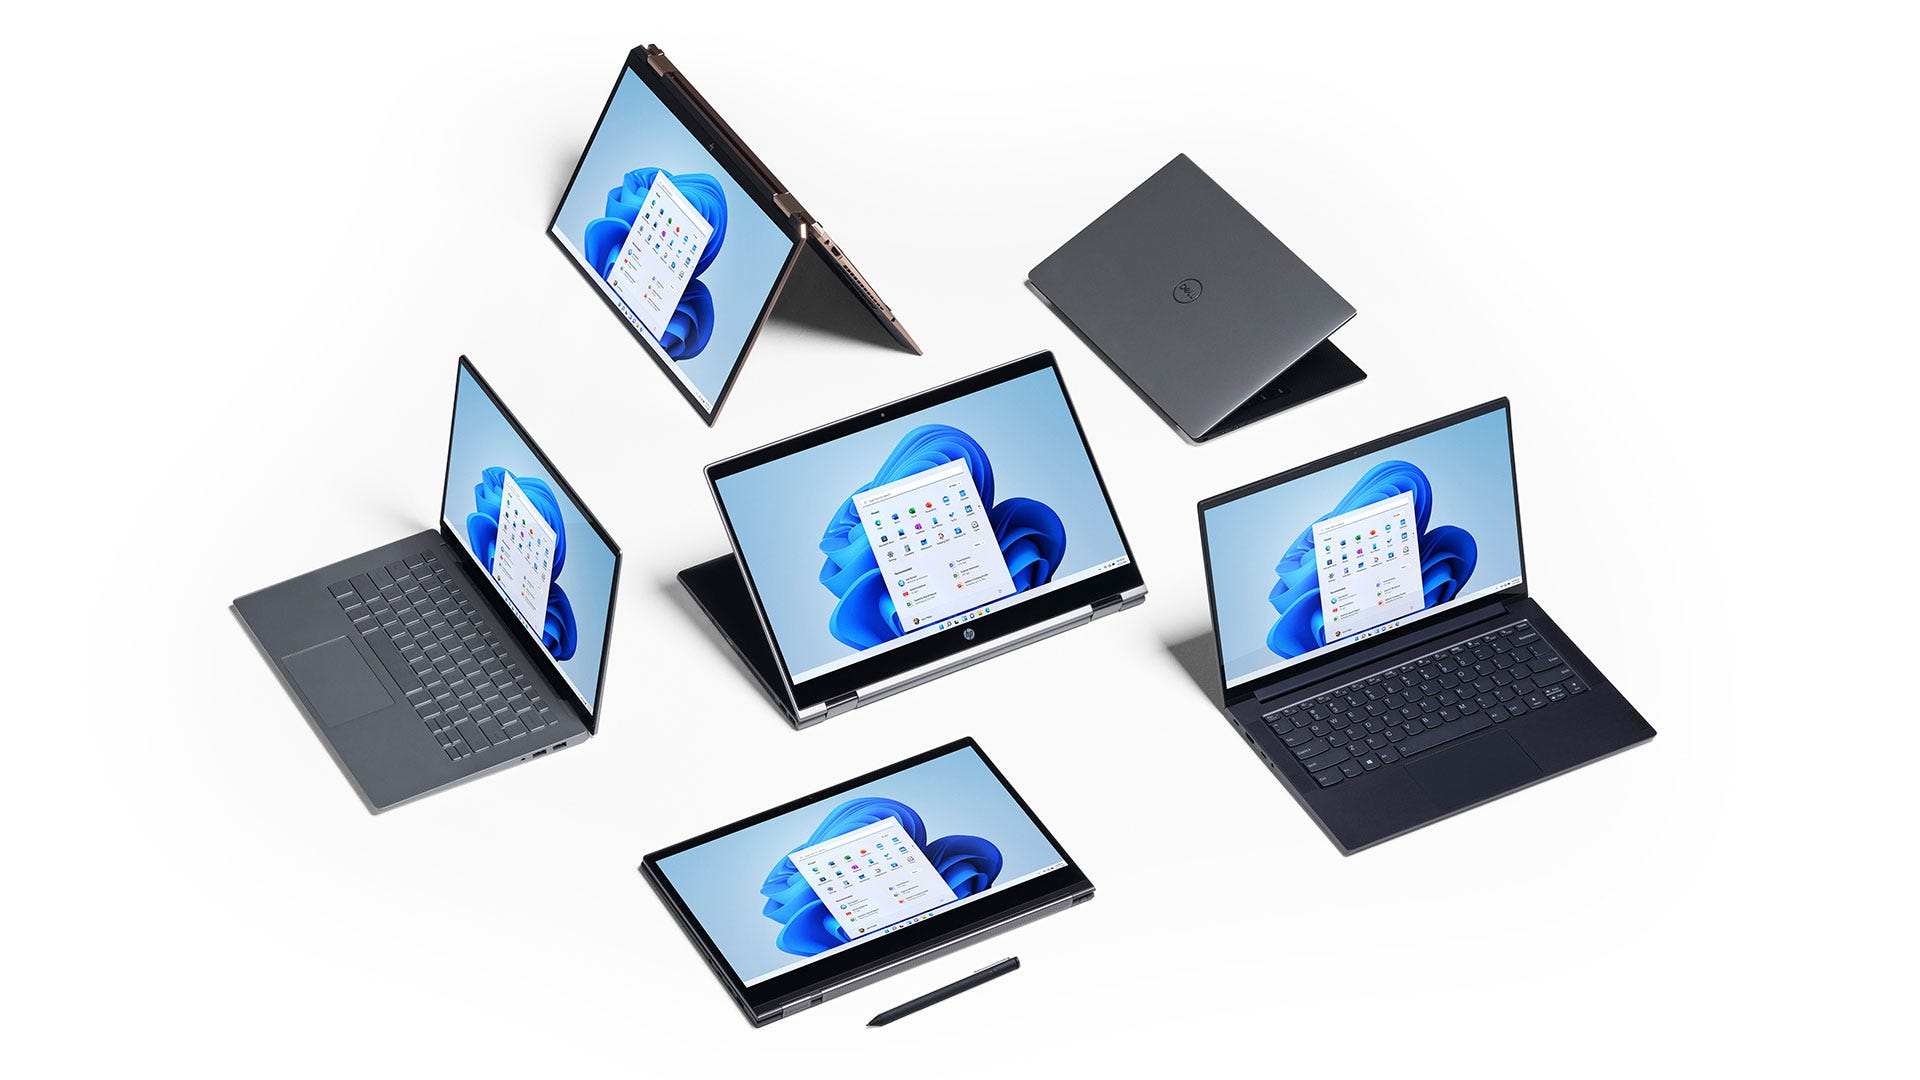 Several devices running Windows 11